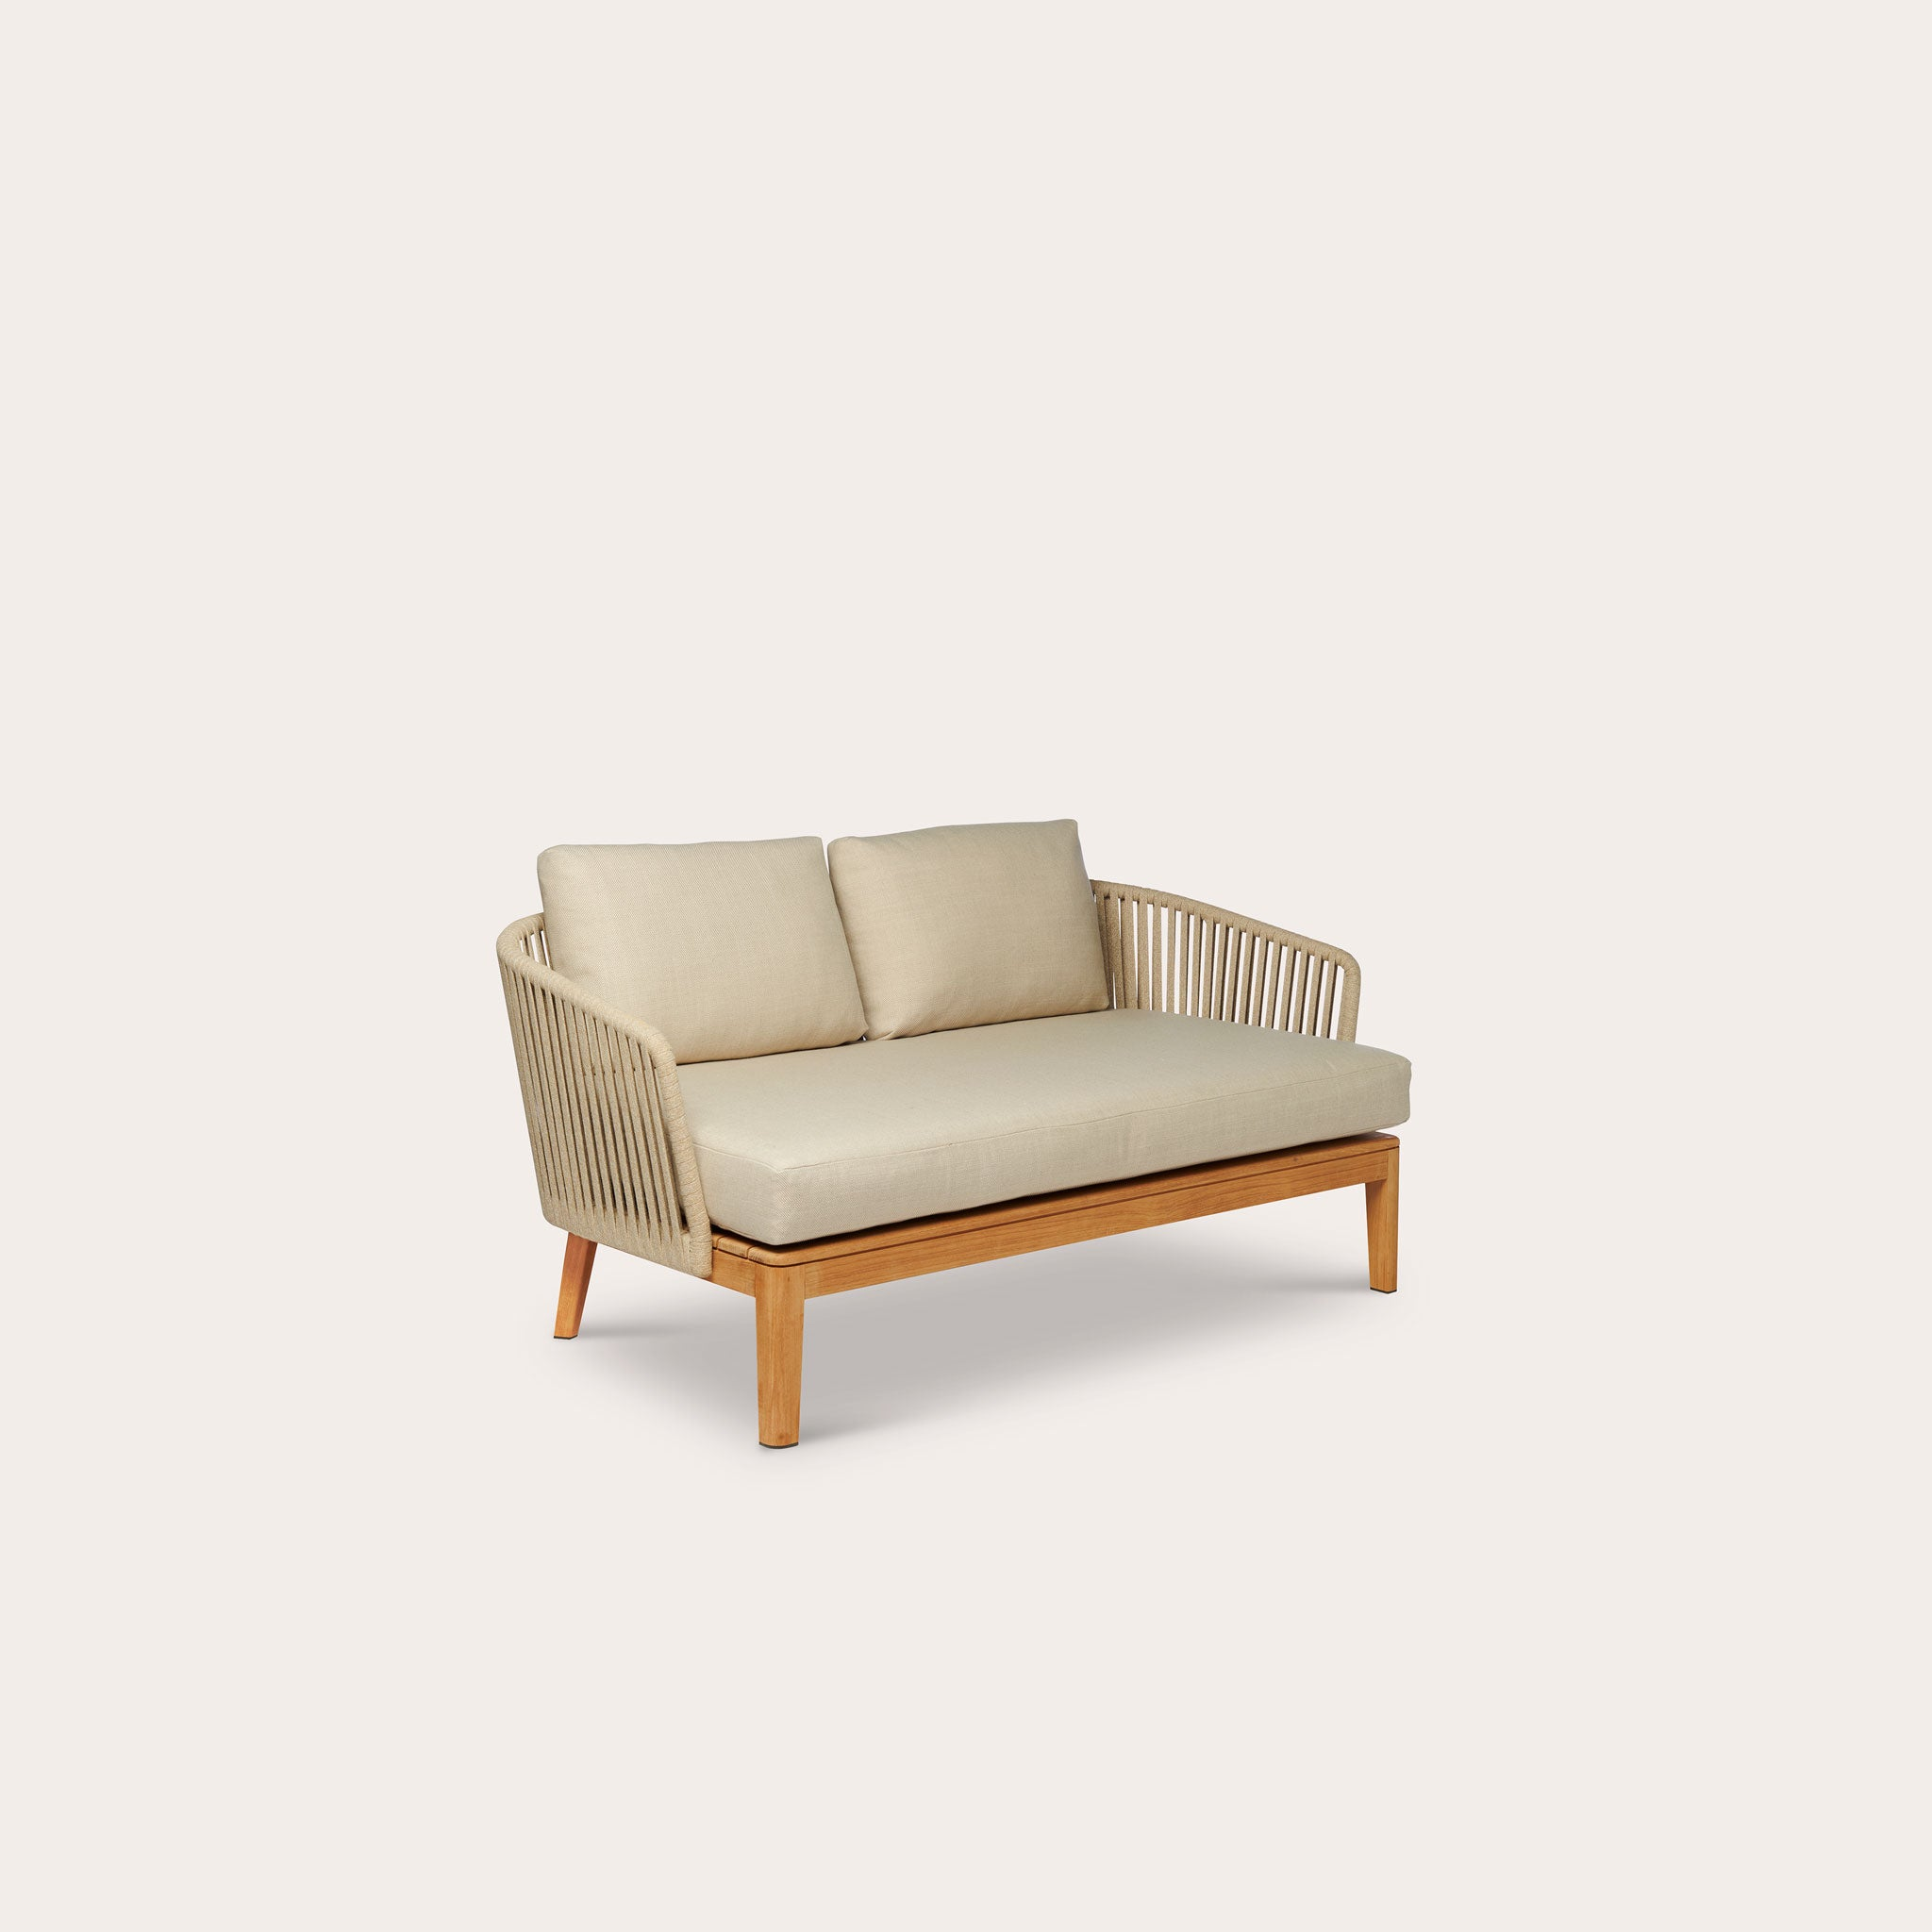 MOOD Sofa Outdoor Studio Segers Designer Furniture Sku: 007-200-11913